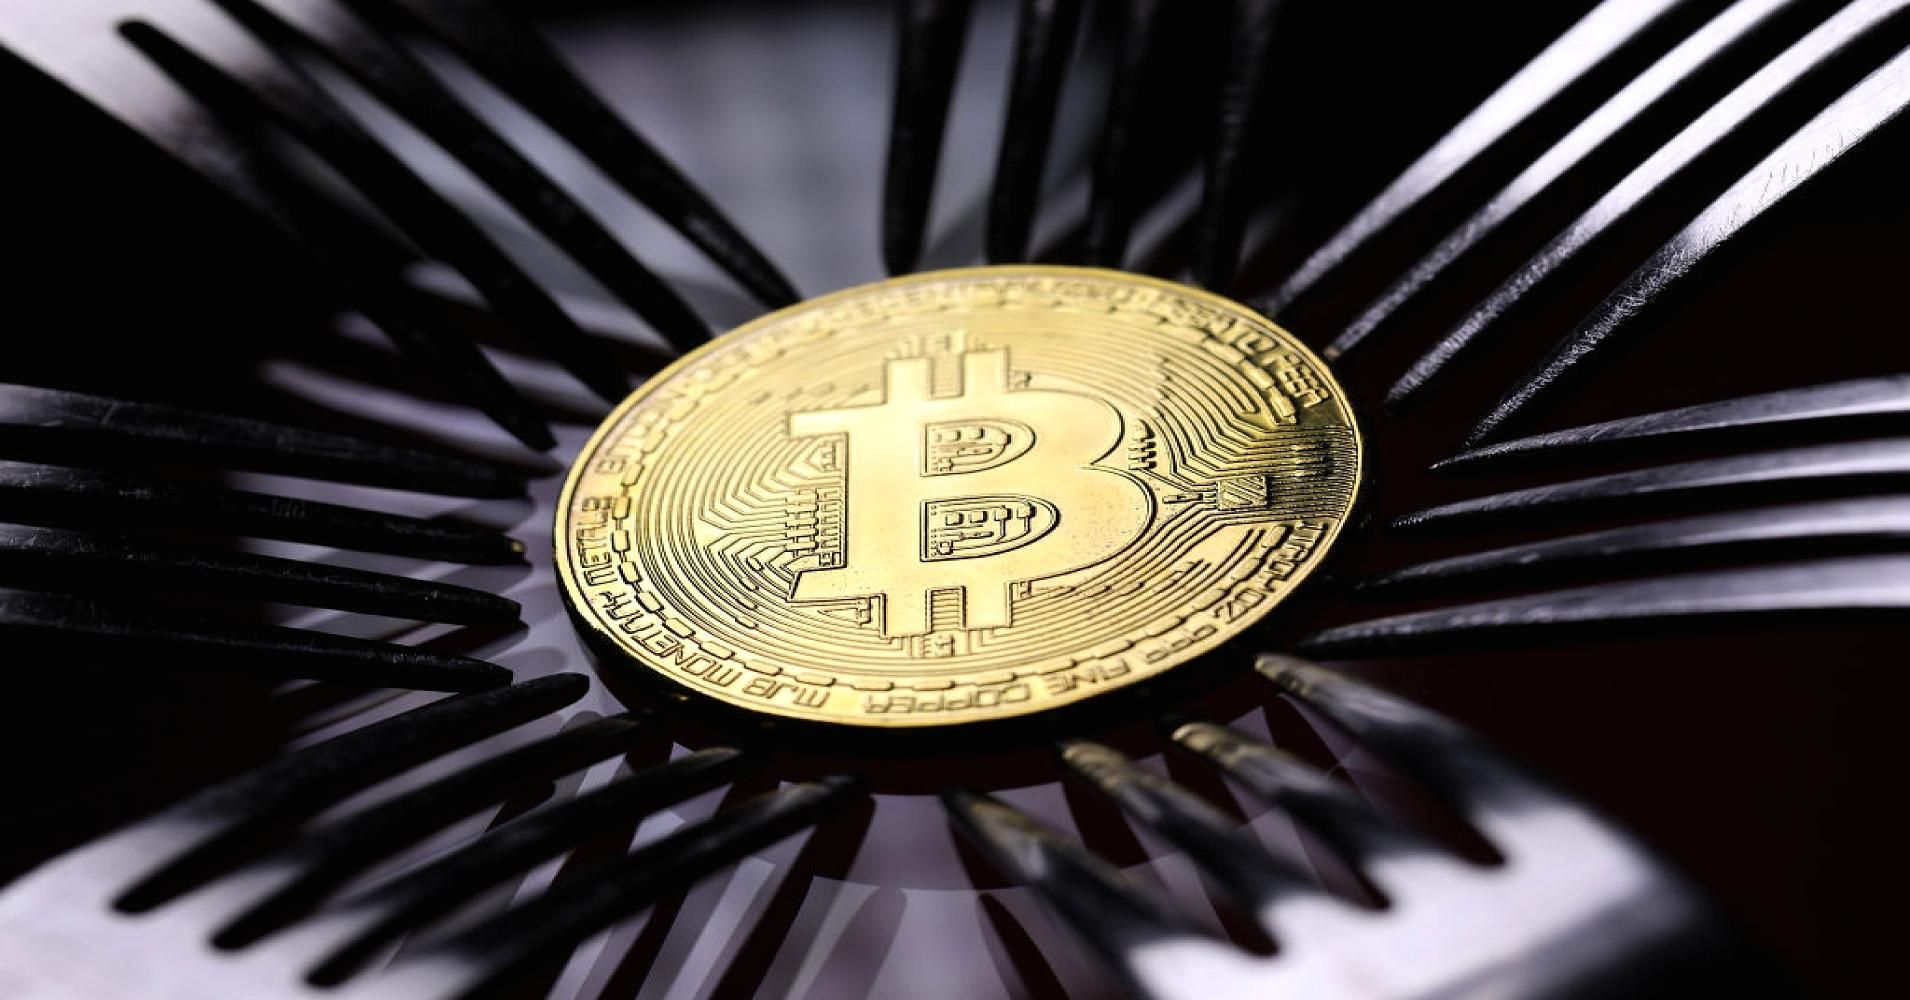 Bitcoin hasnt hit bottom cryptocurrency trader says